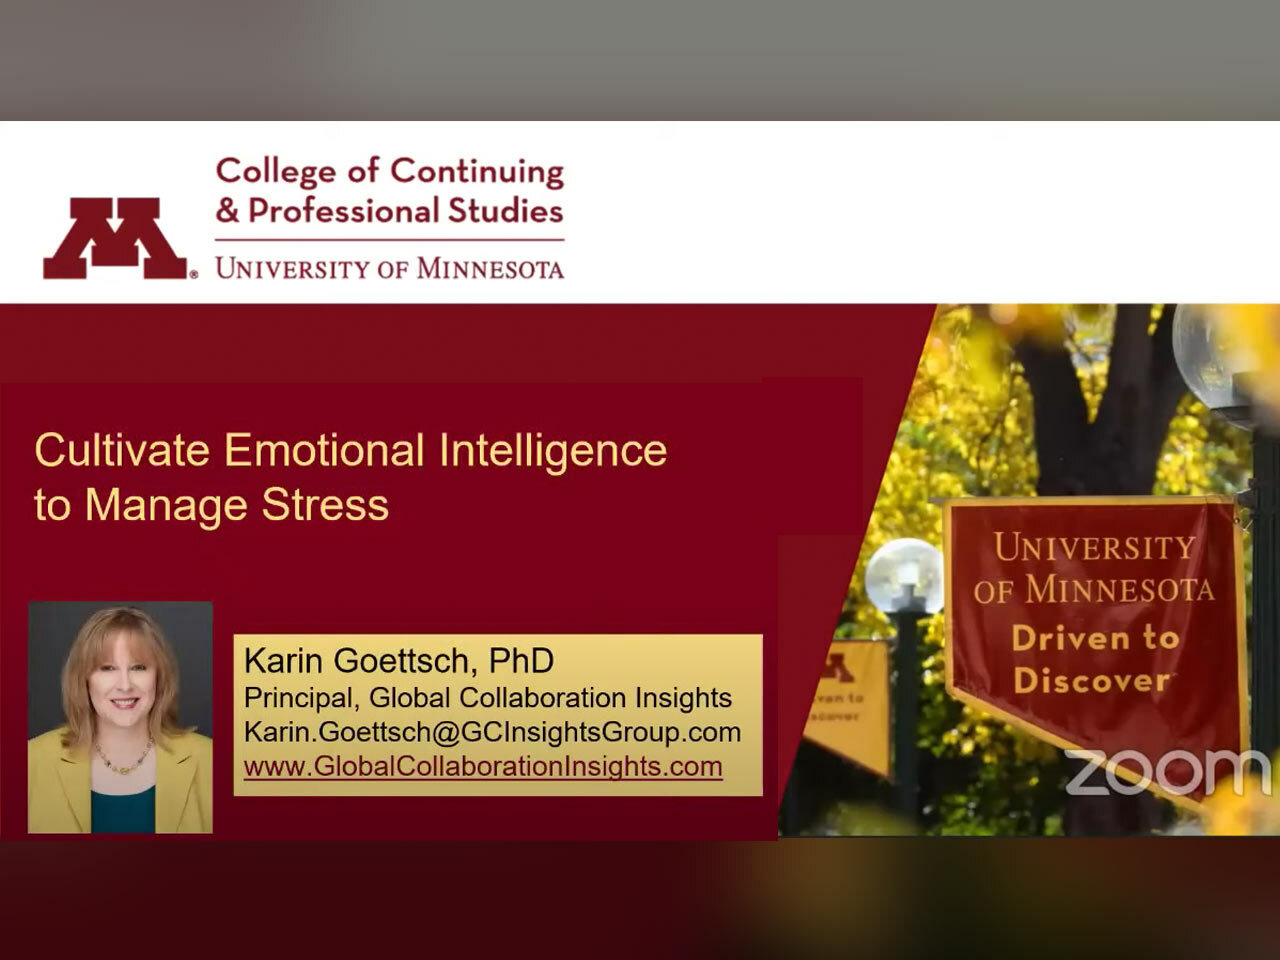 Webinar: Cultivate Emotional Intelligence to Manage Stress